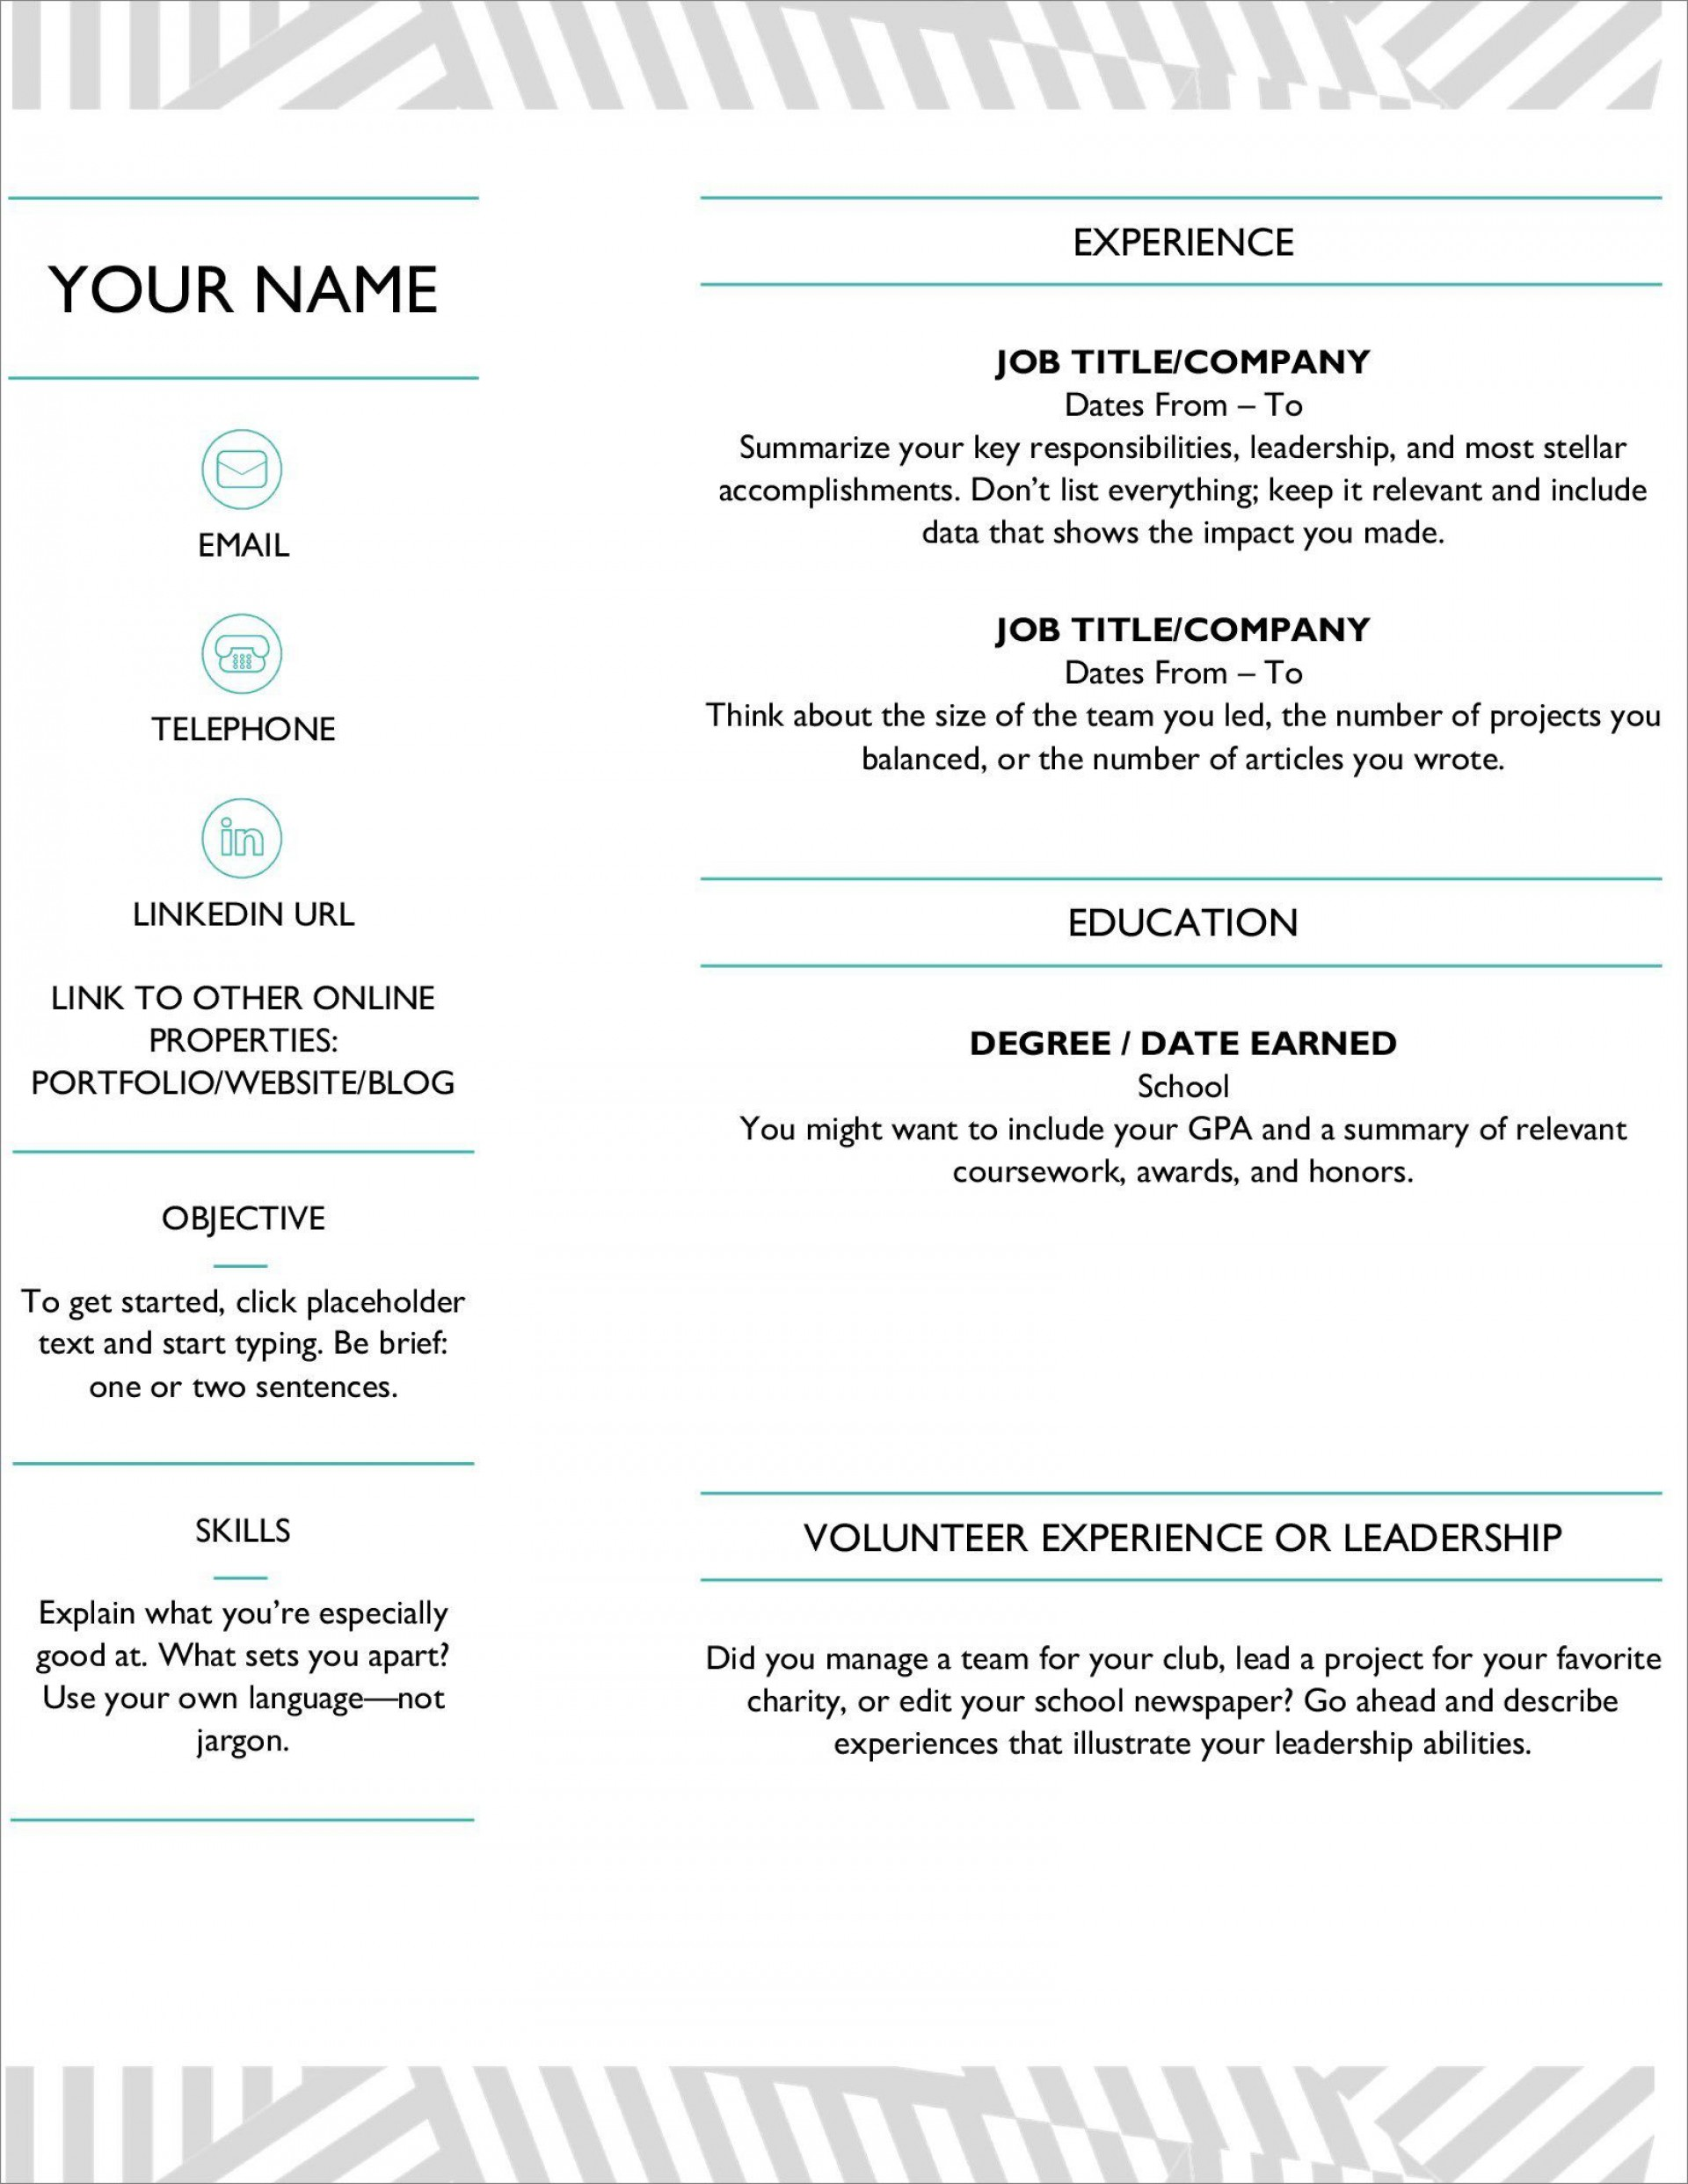 007 Exceptional Downloadable Resume Template Word Picture  Free Download Philippine 20181920